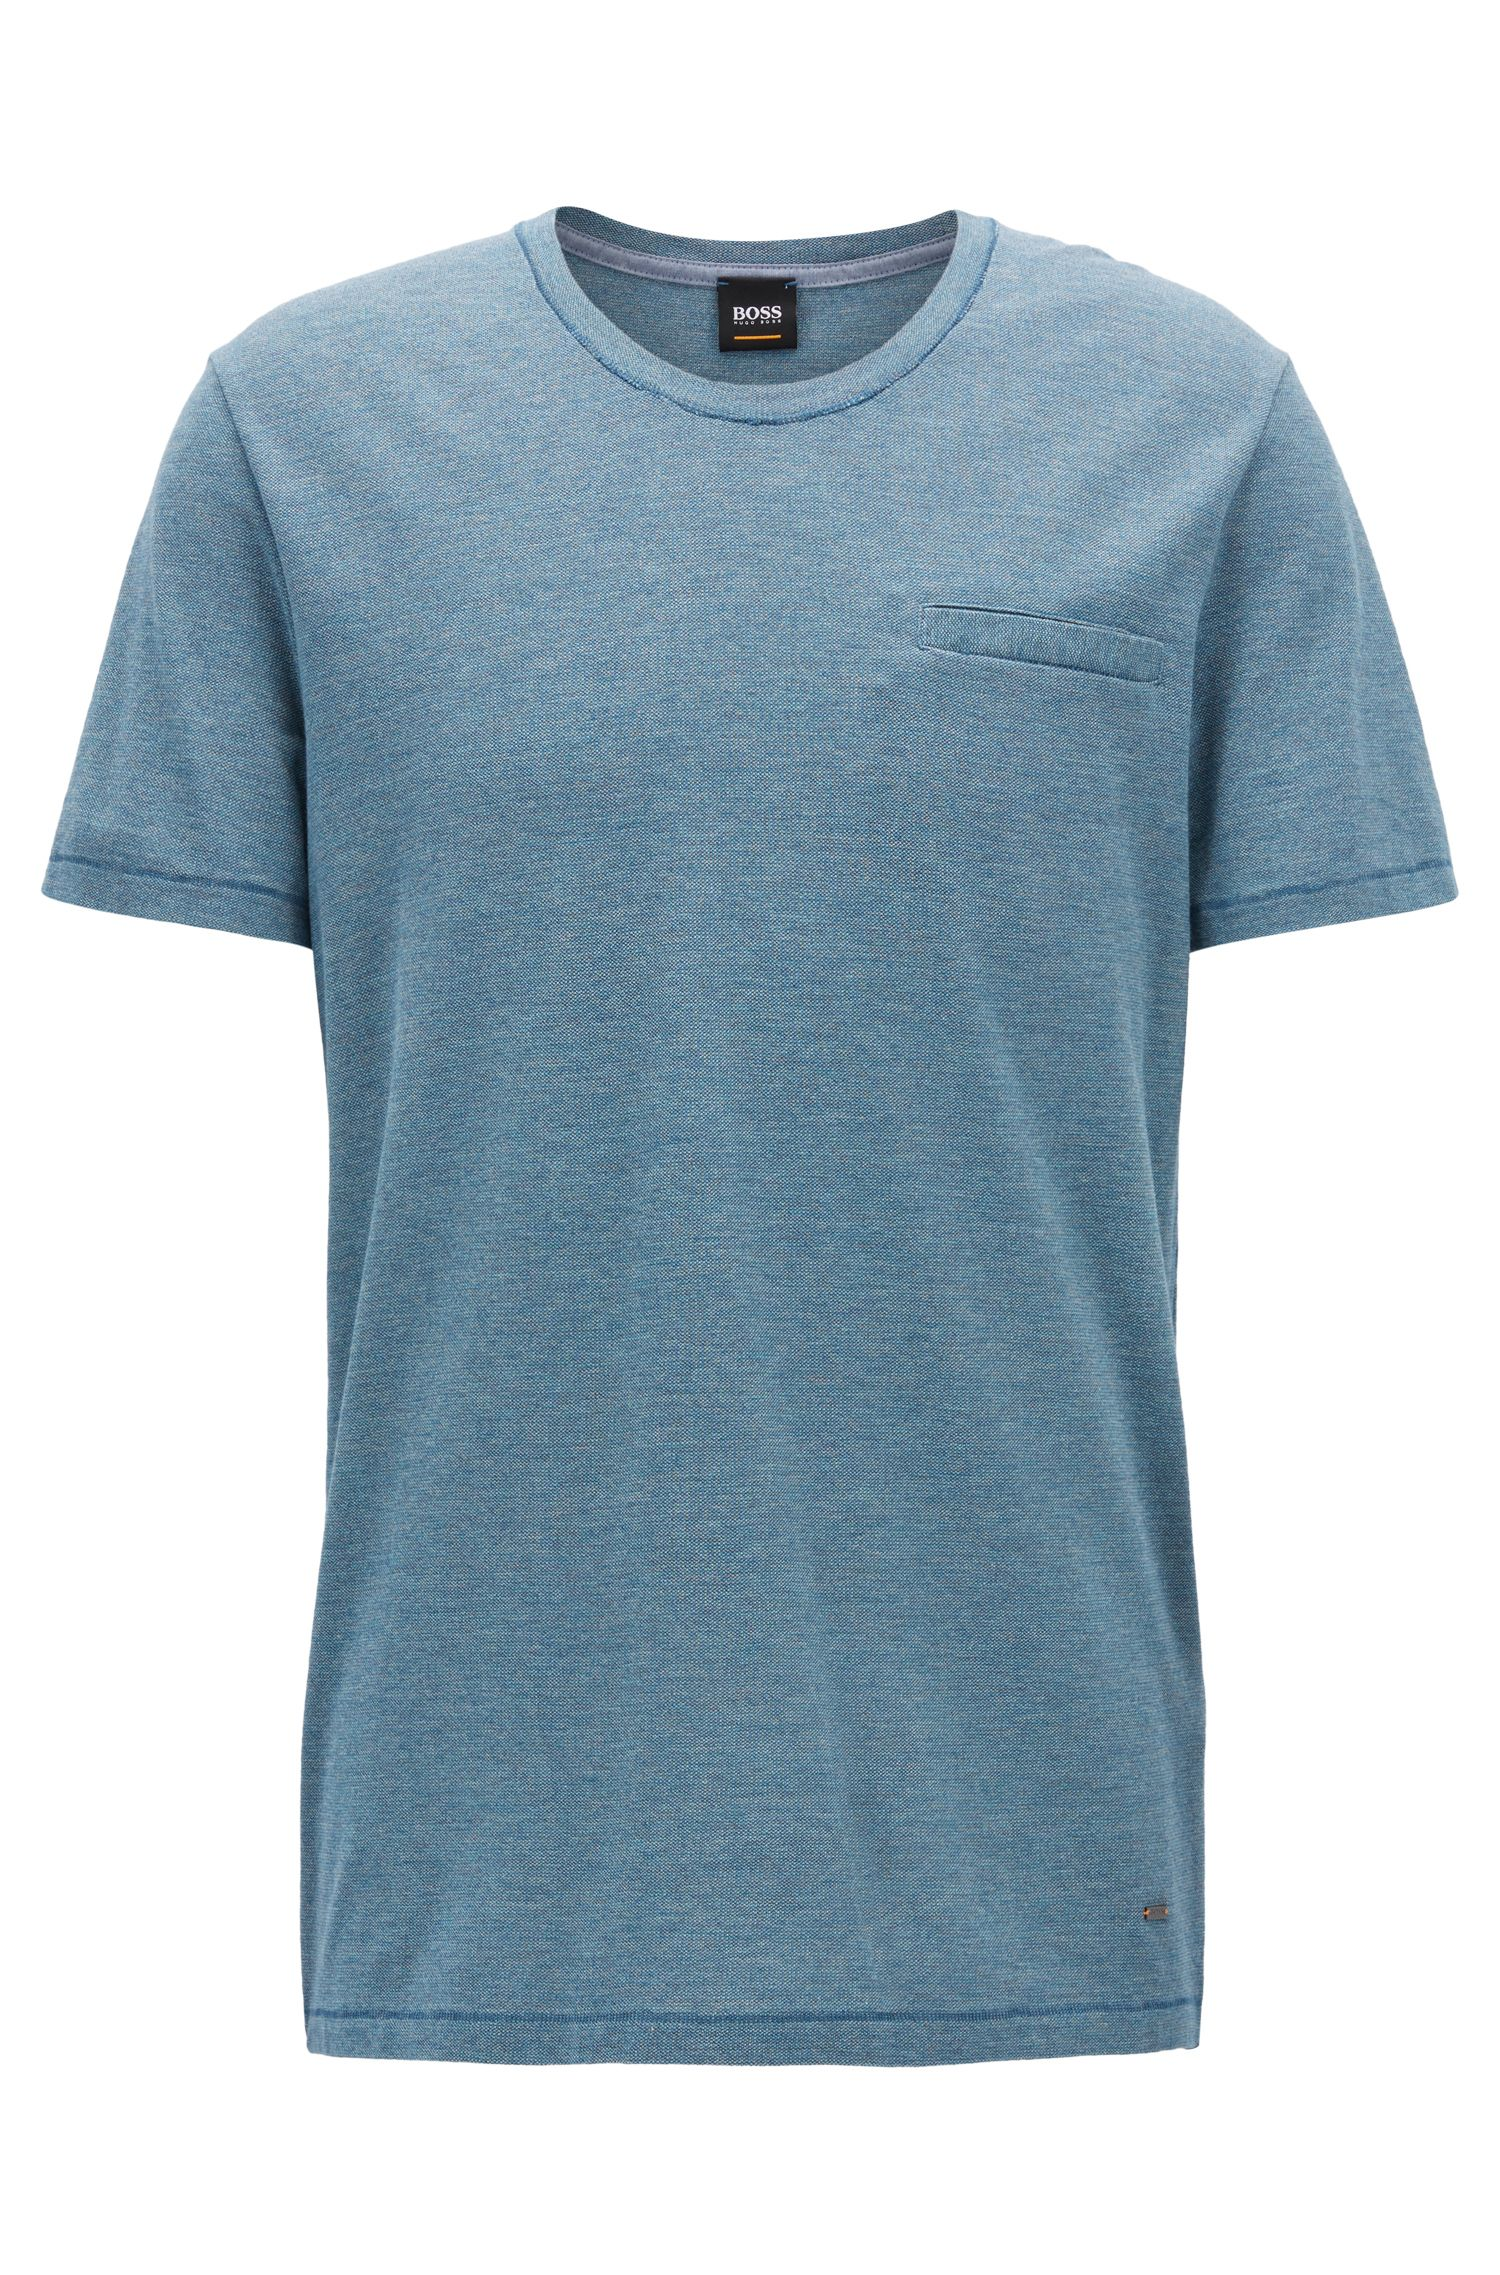 Scoop-neck T-shirt in yarn-dyed mouliné cotton